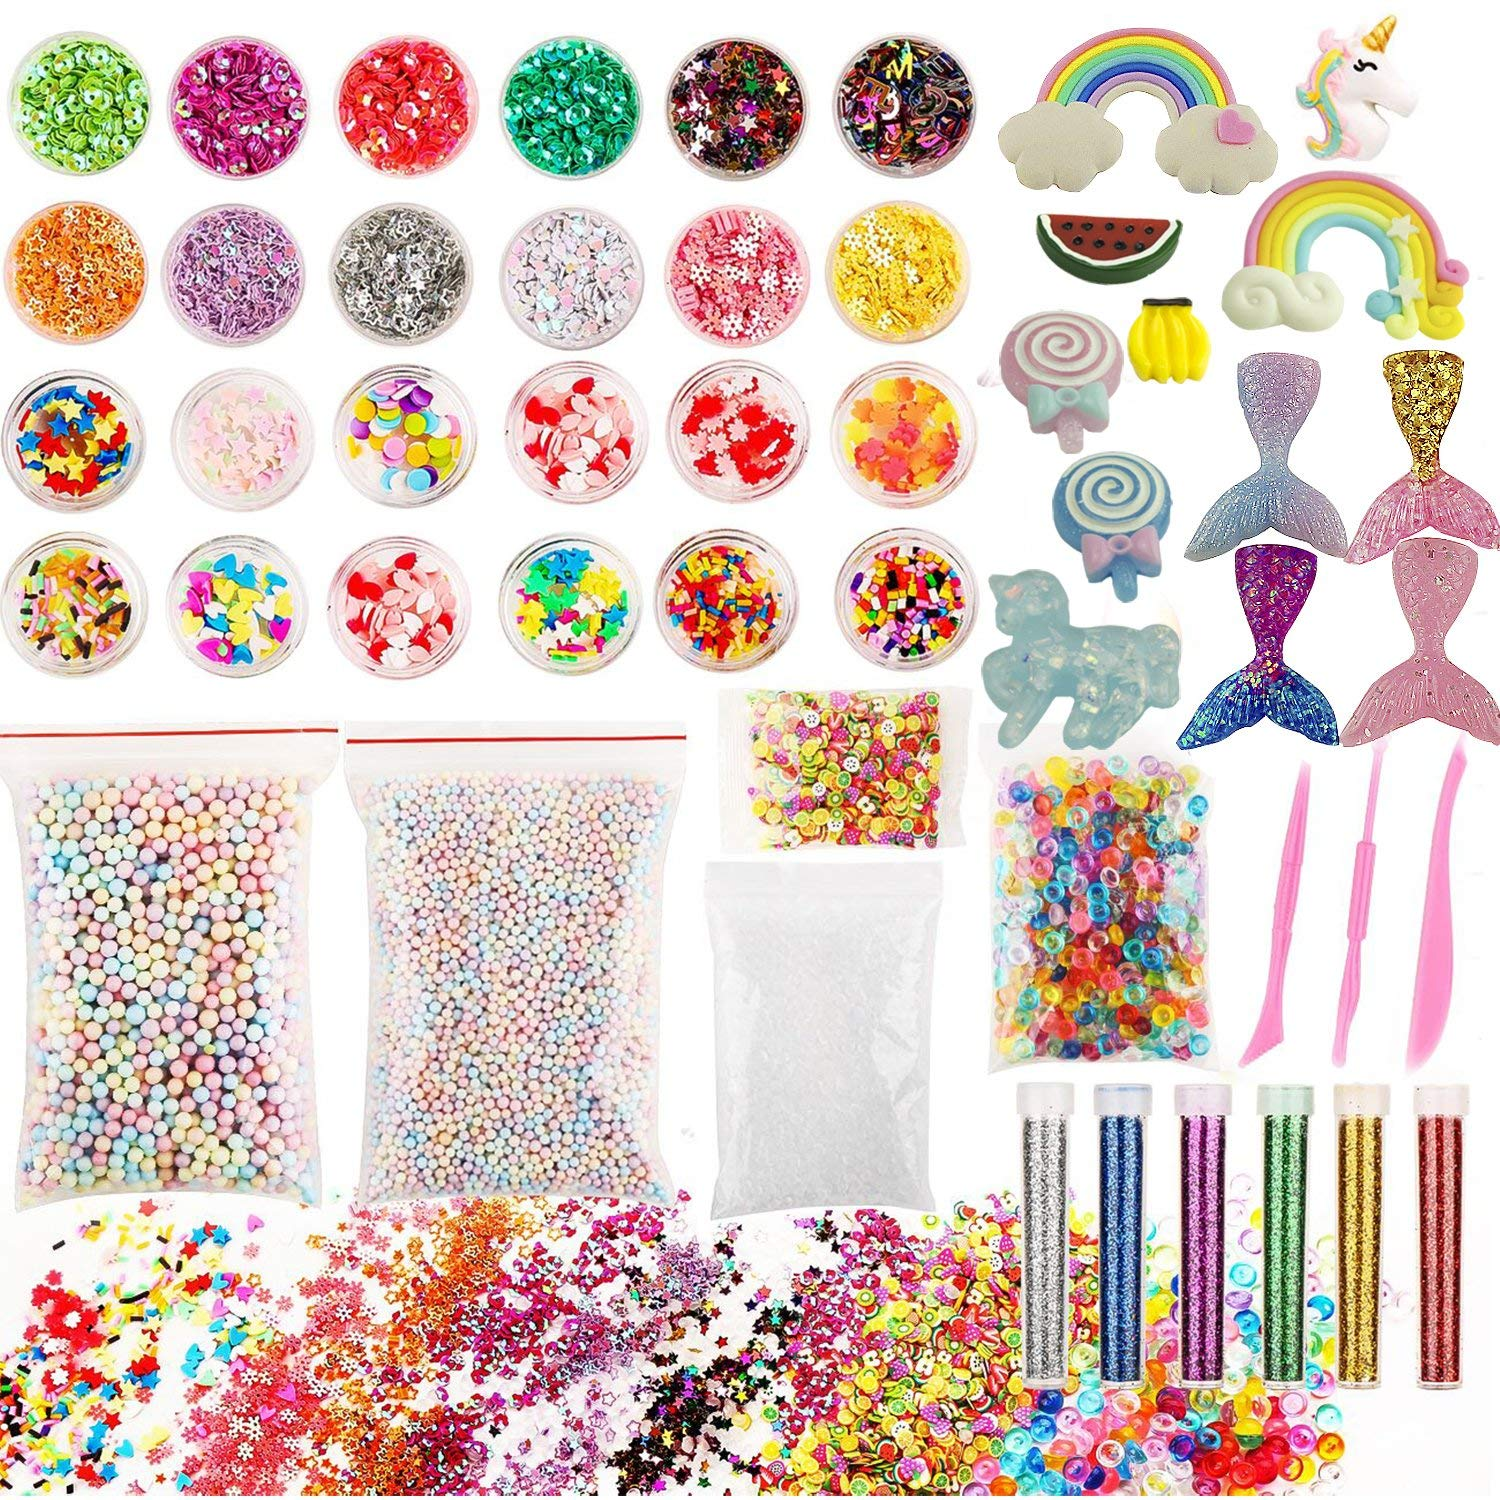 Slime Supplies kit, 50 Pack Slime Kits Include Slime Charms Fishbowl Beads, Pearl, Floam Beads, Glitter Jars, Confetti, Slime Tools, DIY Art Craft for Homemade Slime